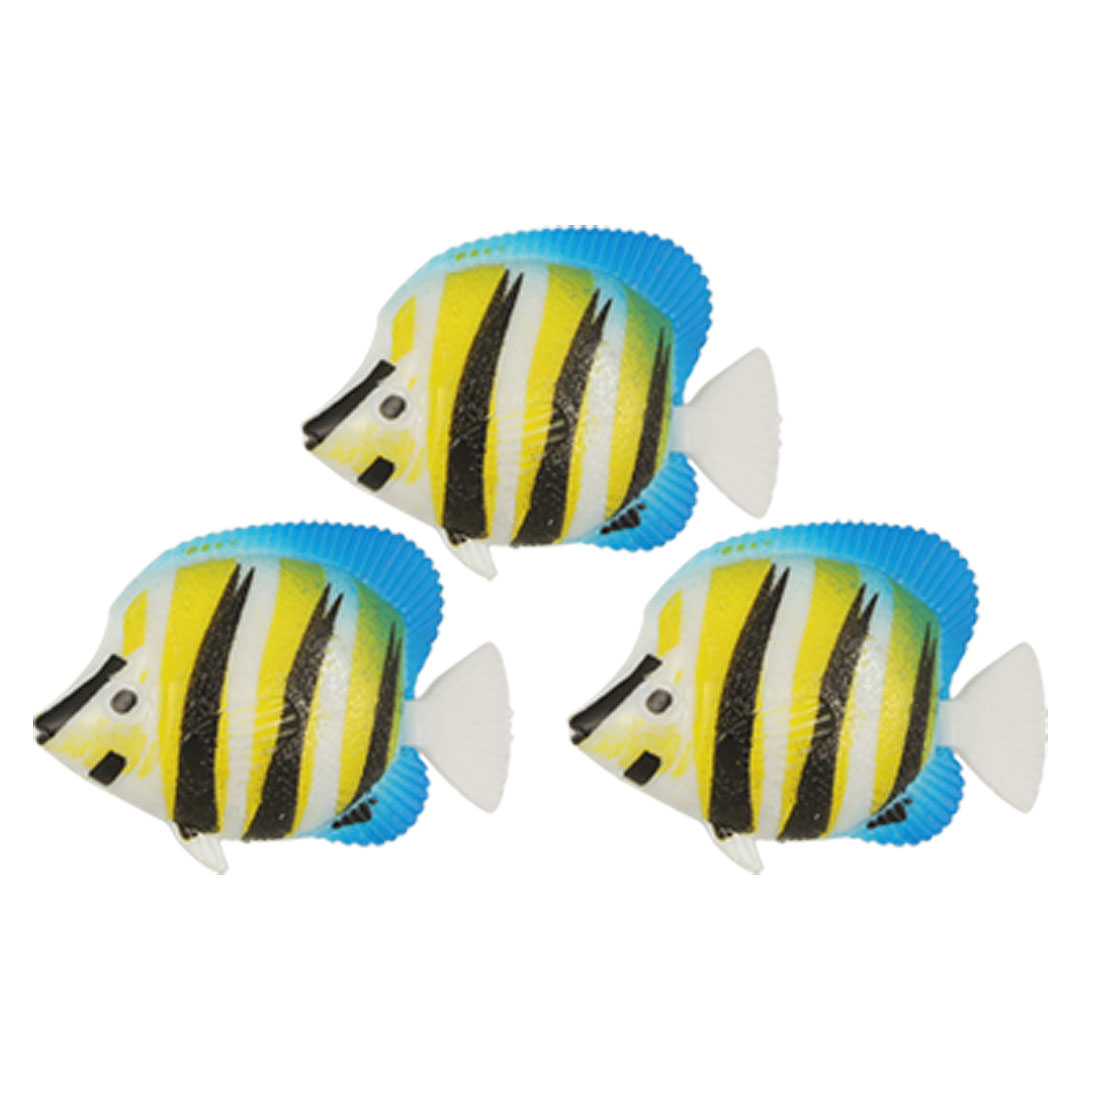 3 Pcs Black Yellow Stripe Mini Plastic Floating Fish for Aquarium Tank Decor